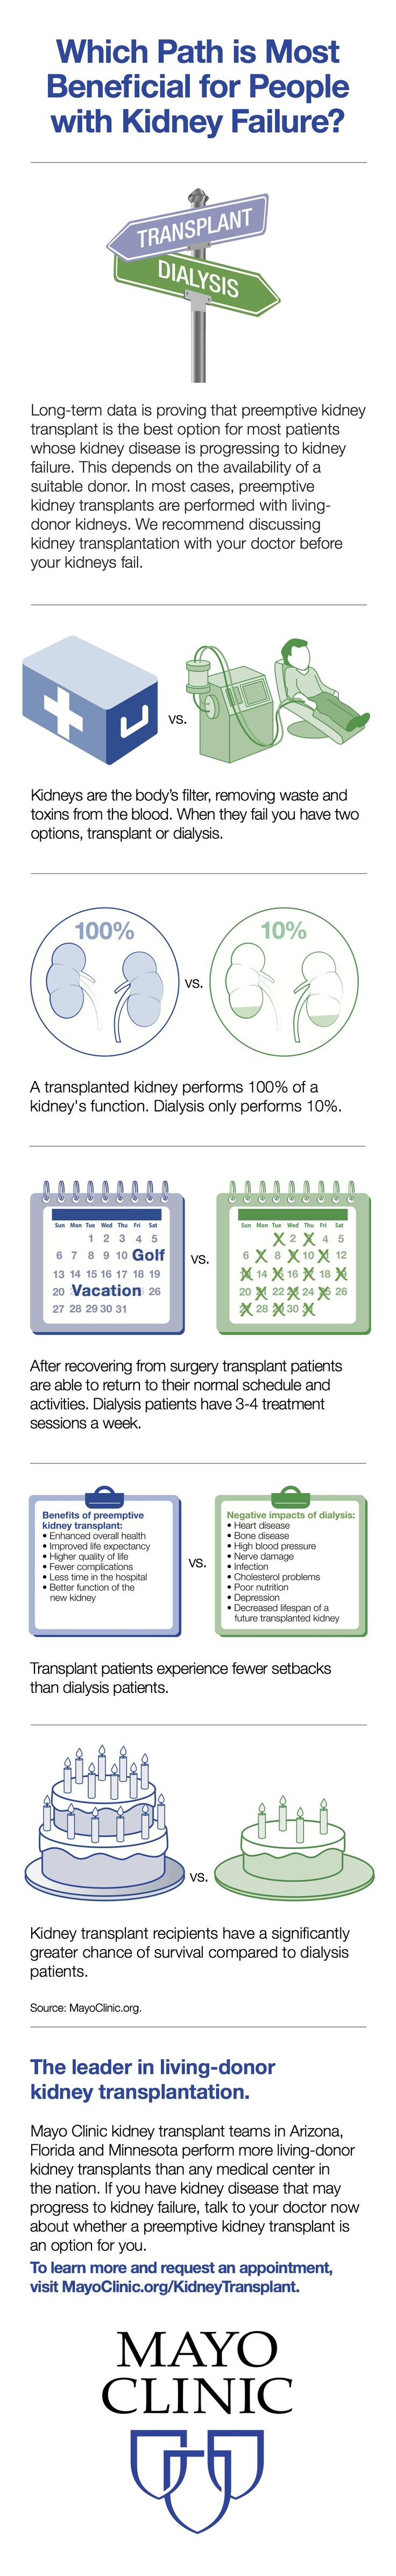 A preemptive kidney transplant is the best option for most patients whose kidney disease is progressing to kidney failure.